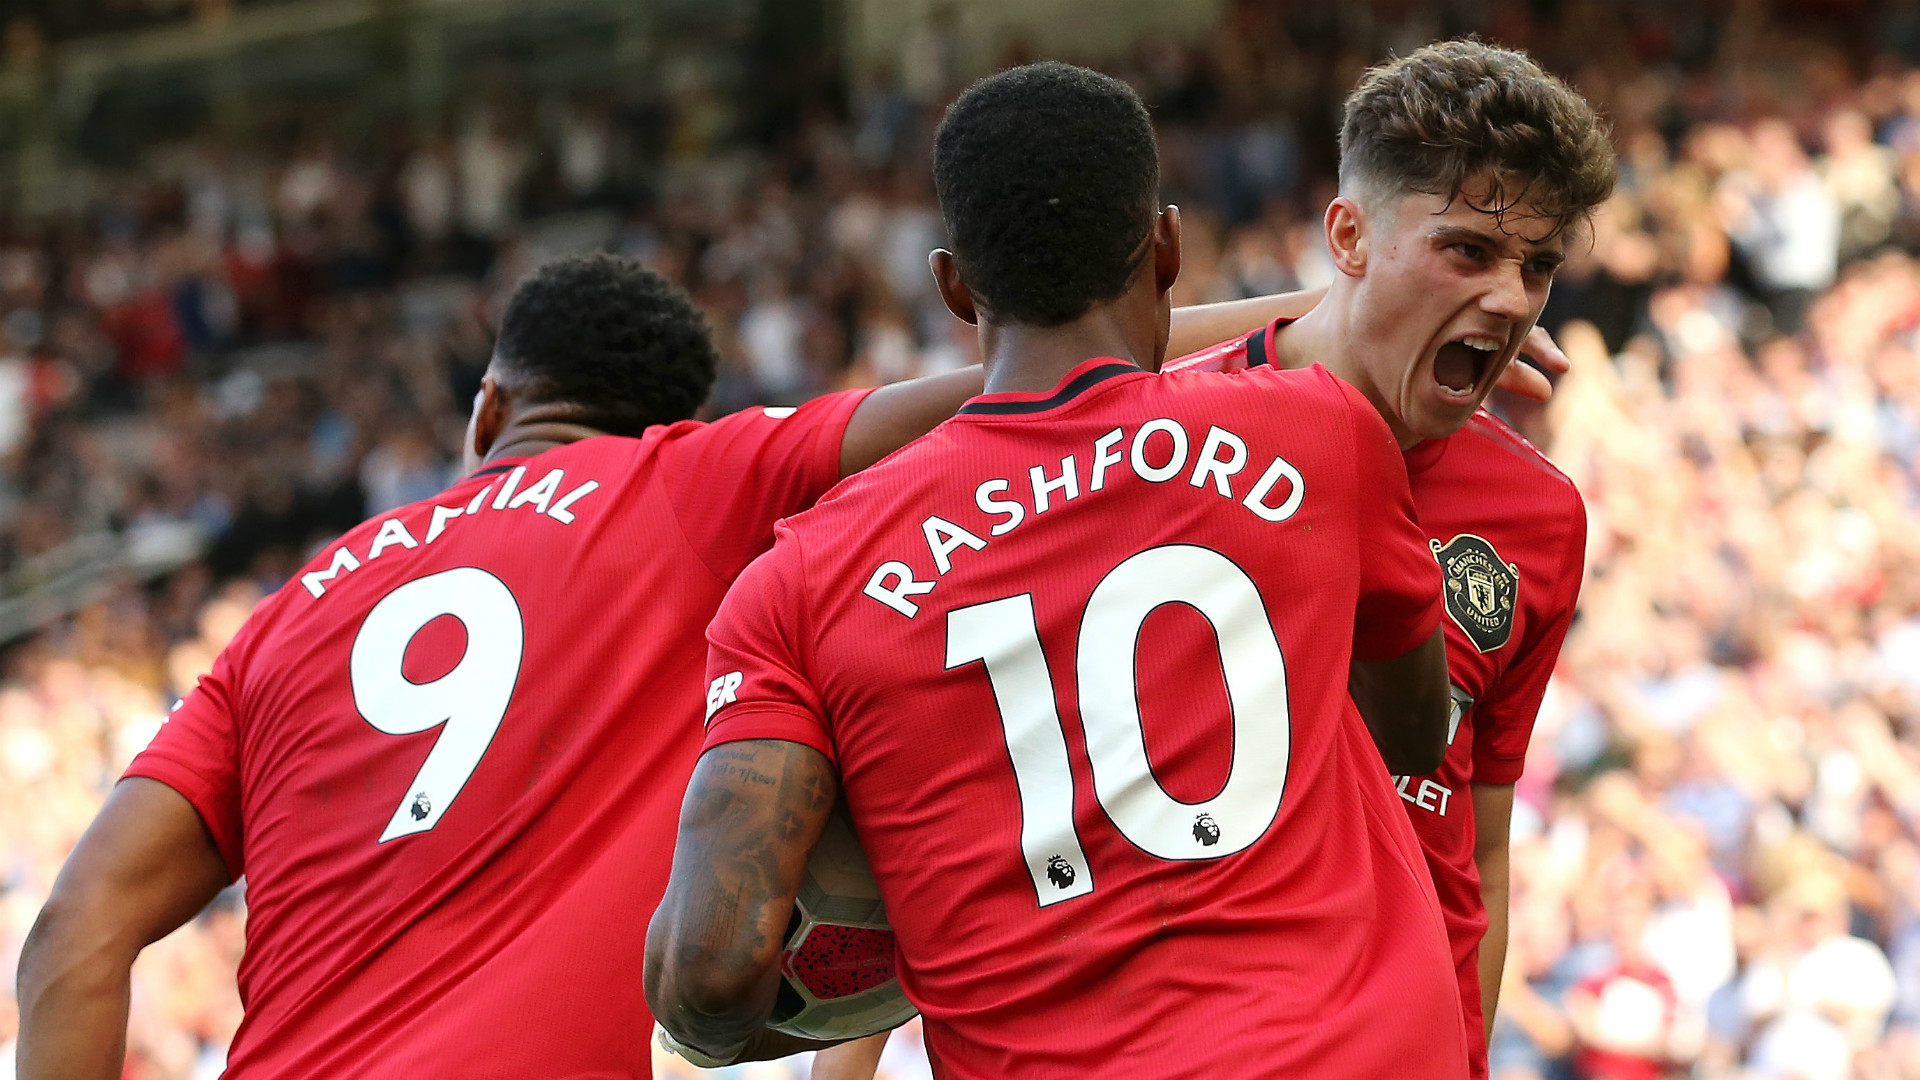 'Man Utd can challenge for the title next season' – James admits 2020-21 is 'massive' for Red Devils